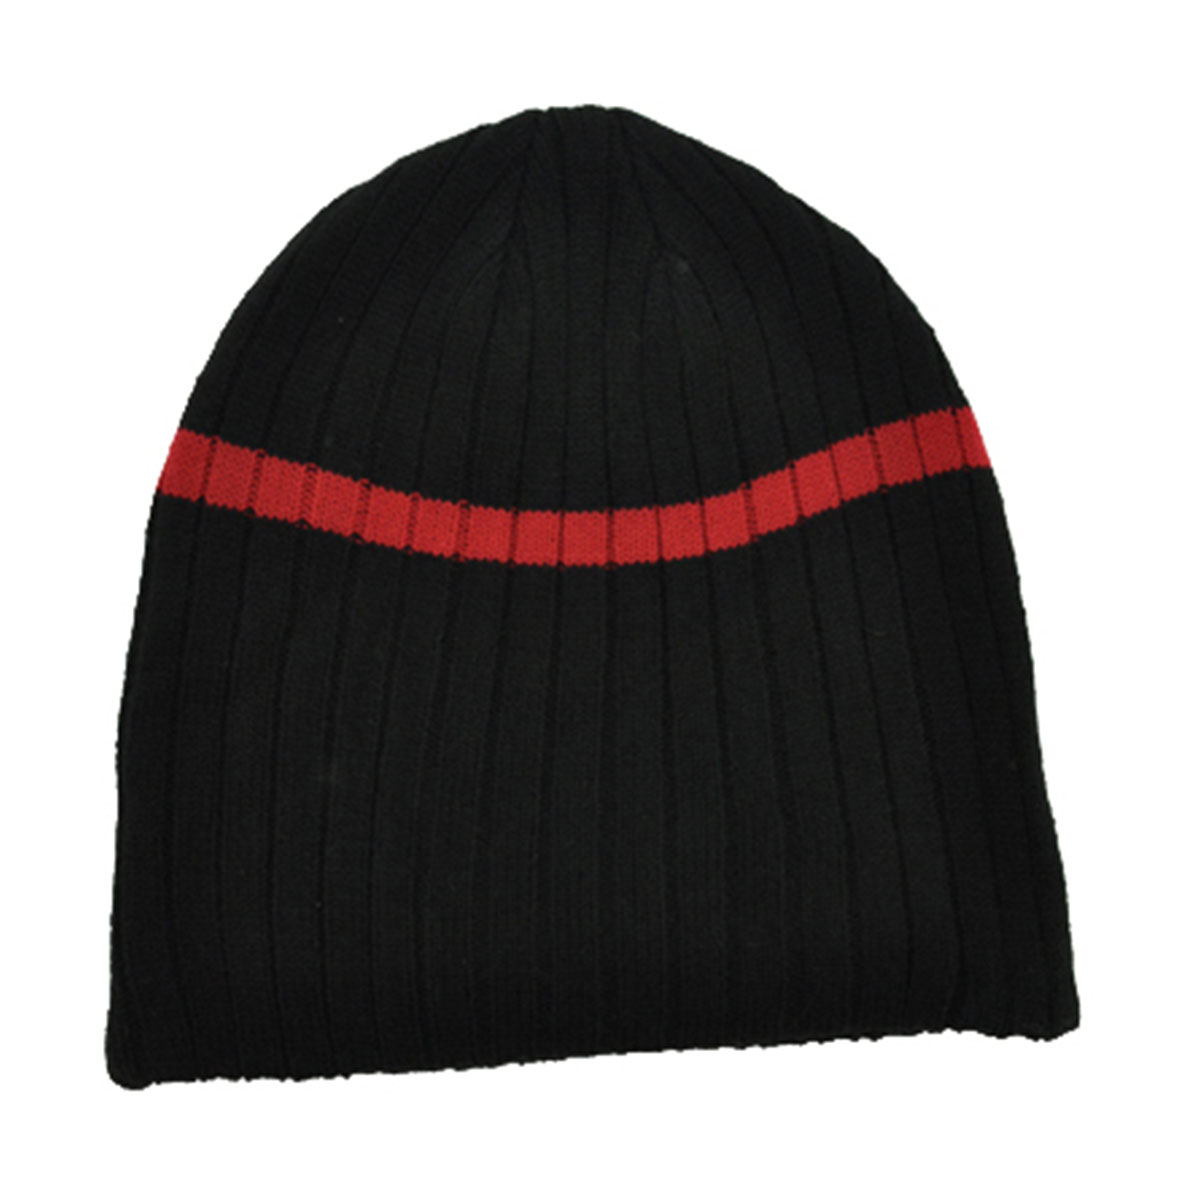 Acrylic Beanie-Black / Red